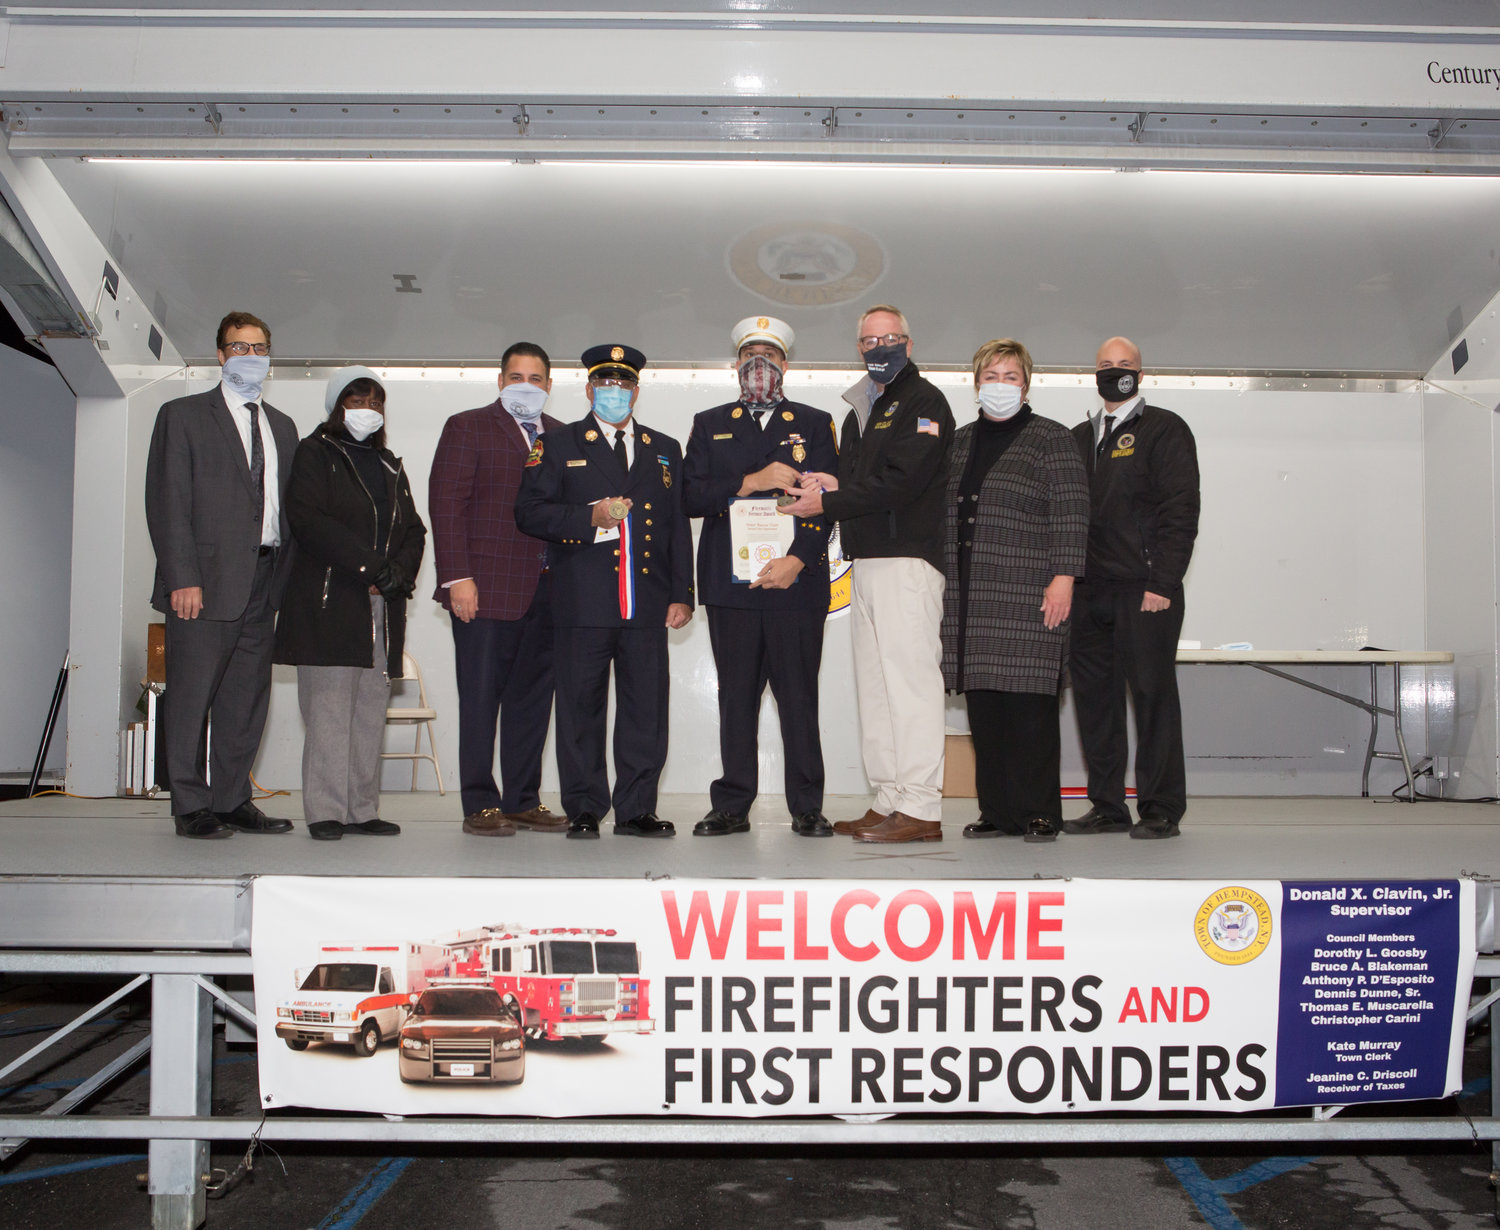 Hempstead town officials hosted a drive-thru firematic awards ceremony. From left were Council people Tom Muscarella, Dorothy Goosby and Anthony D'Esposito, Chief Anthony Rivelli Jr. and ex-Chief Thomas Pandolfo, Town Supervisor Don Clavin, Town Clerk Kate Murray and Councilman Chris Carini.